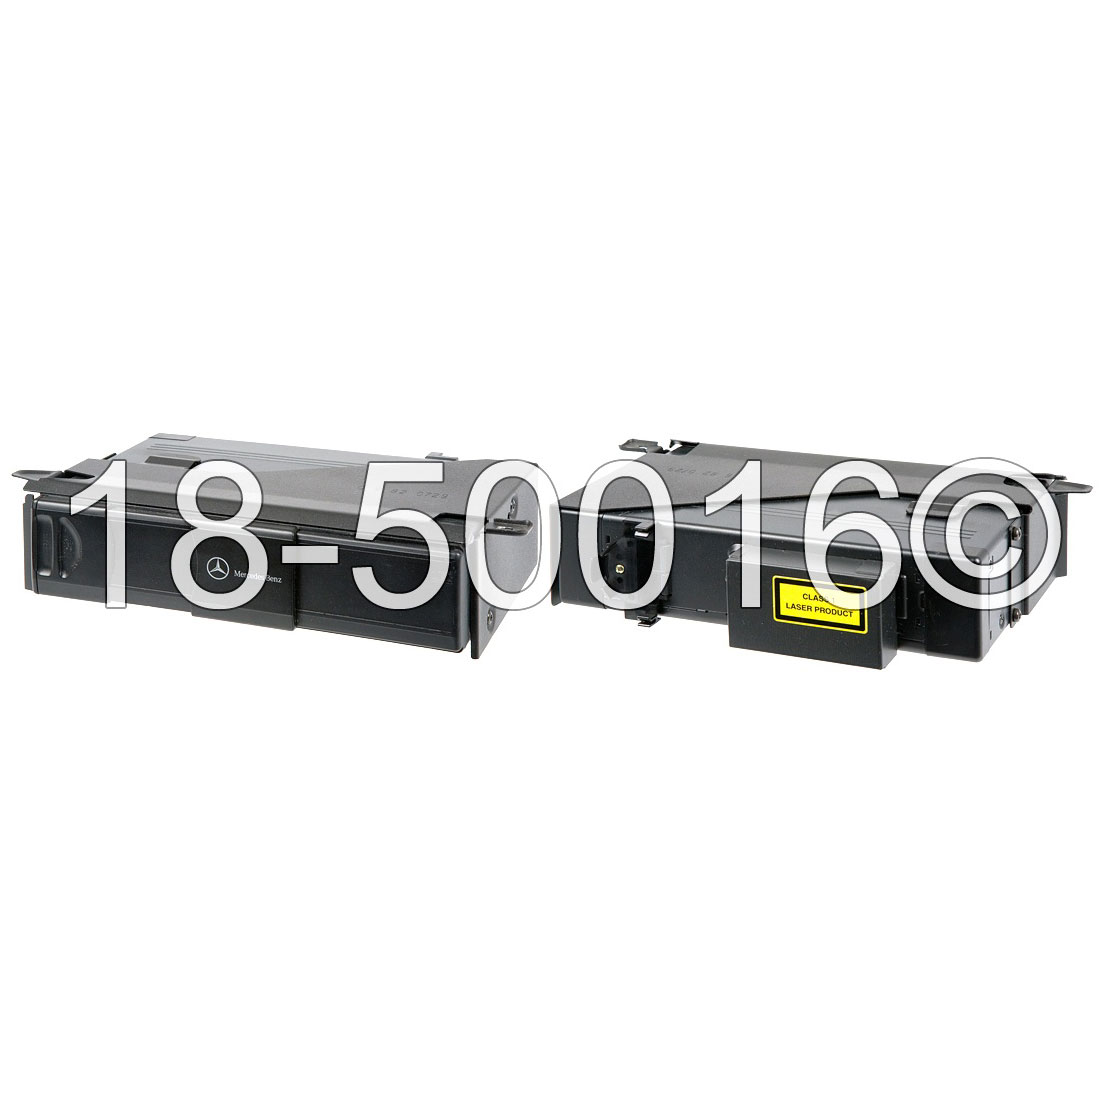 Mercedes_Benz ML430                          CD or DVD ChangerCD or DVD Changer